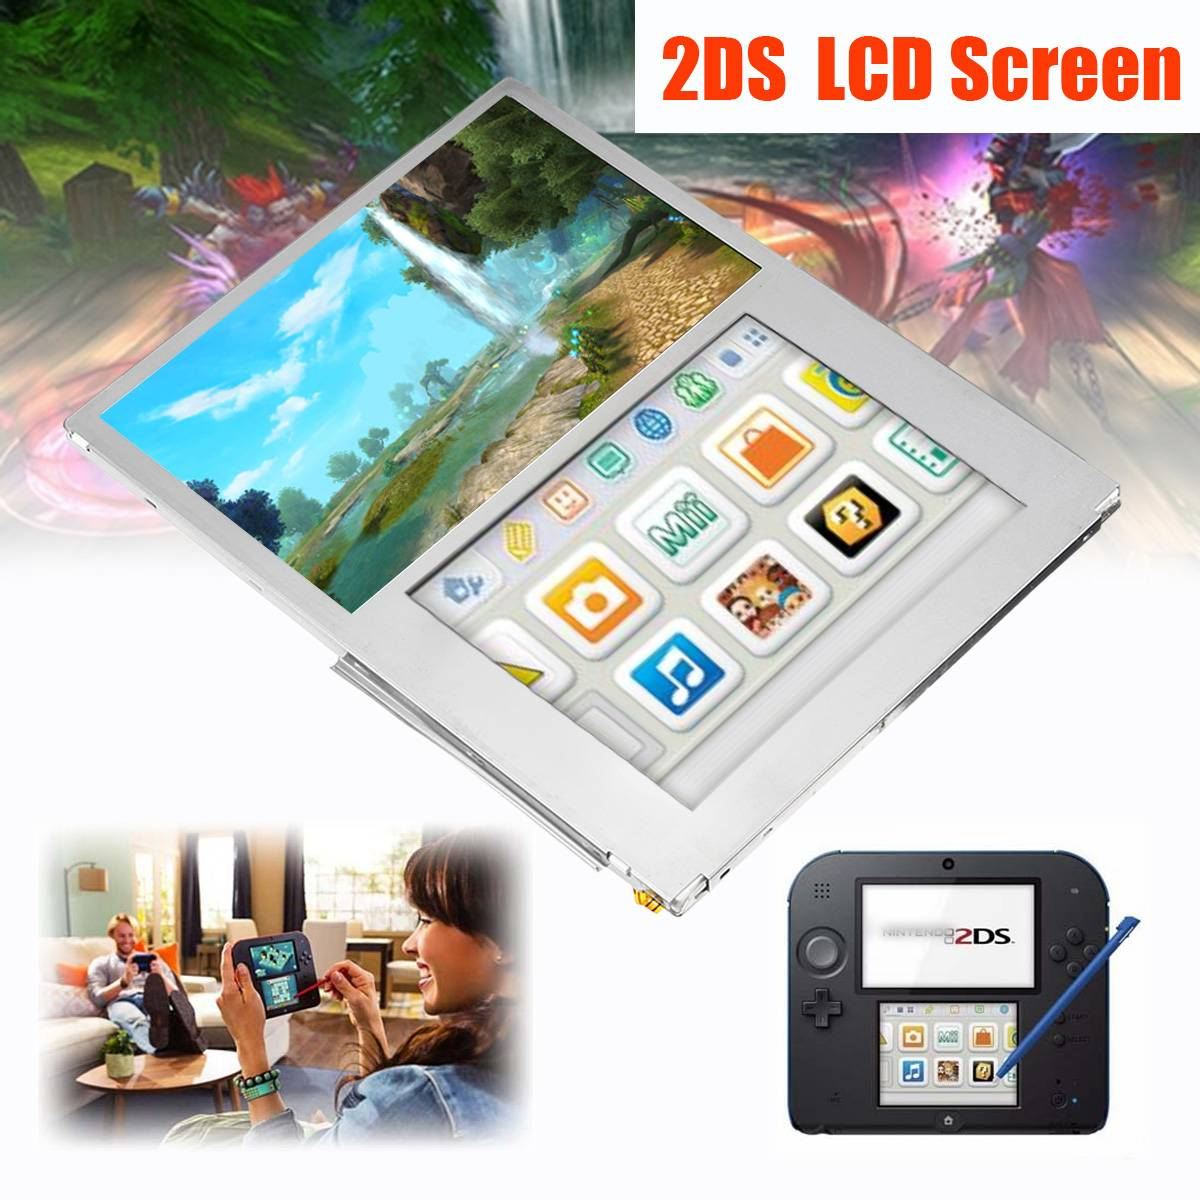 LCD Screen for 2DS Display Replacement Video Games Accessories Top Bottom Upper Lower LCD Panel Only for 2DS 2013